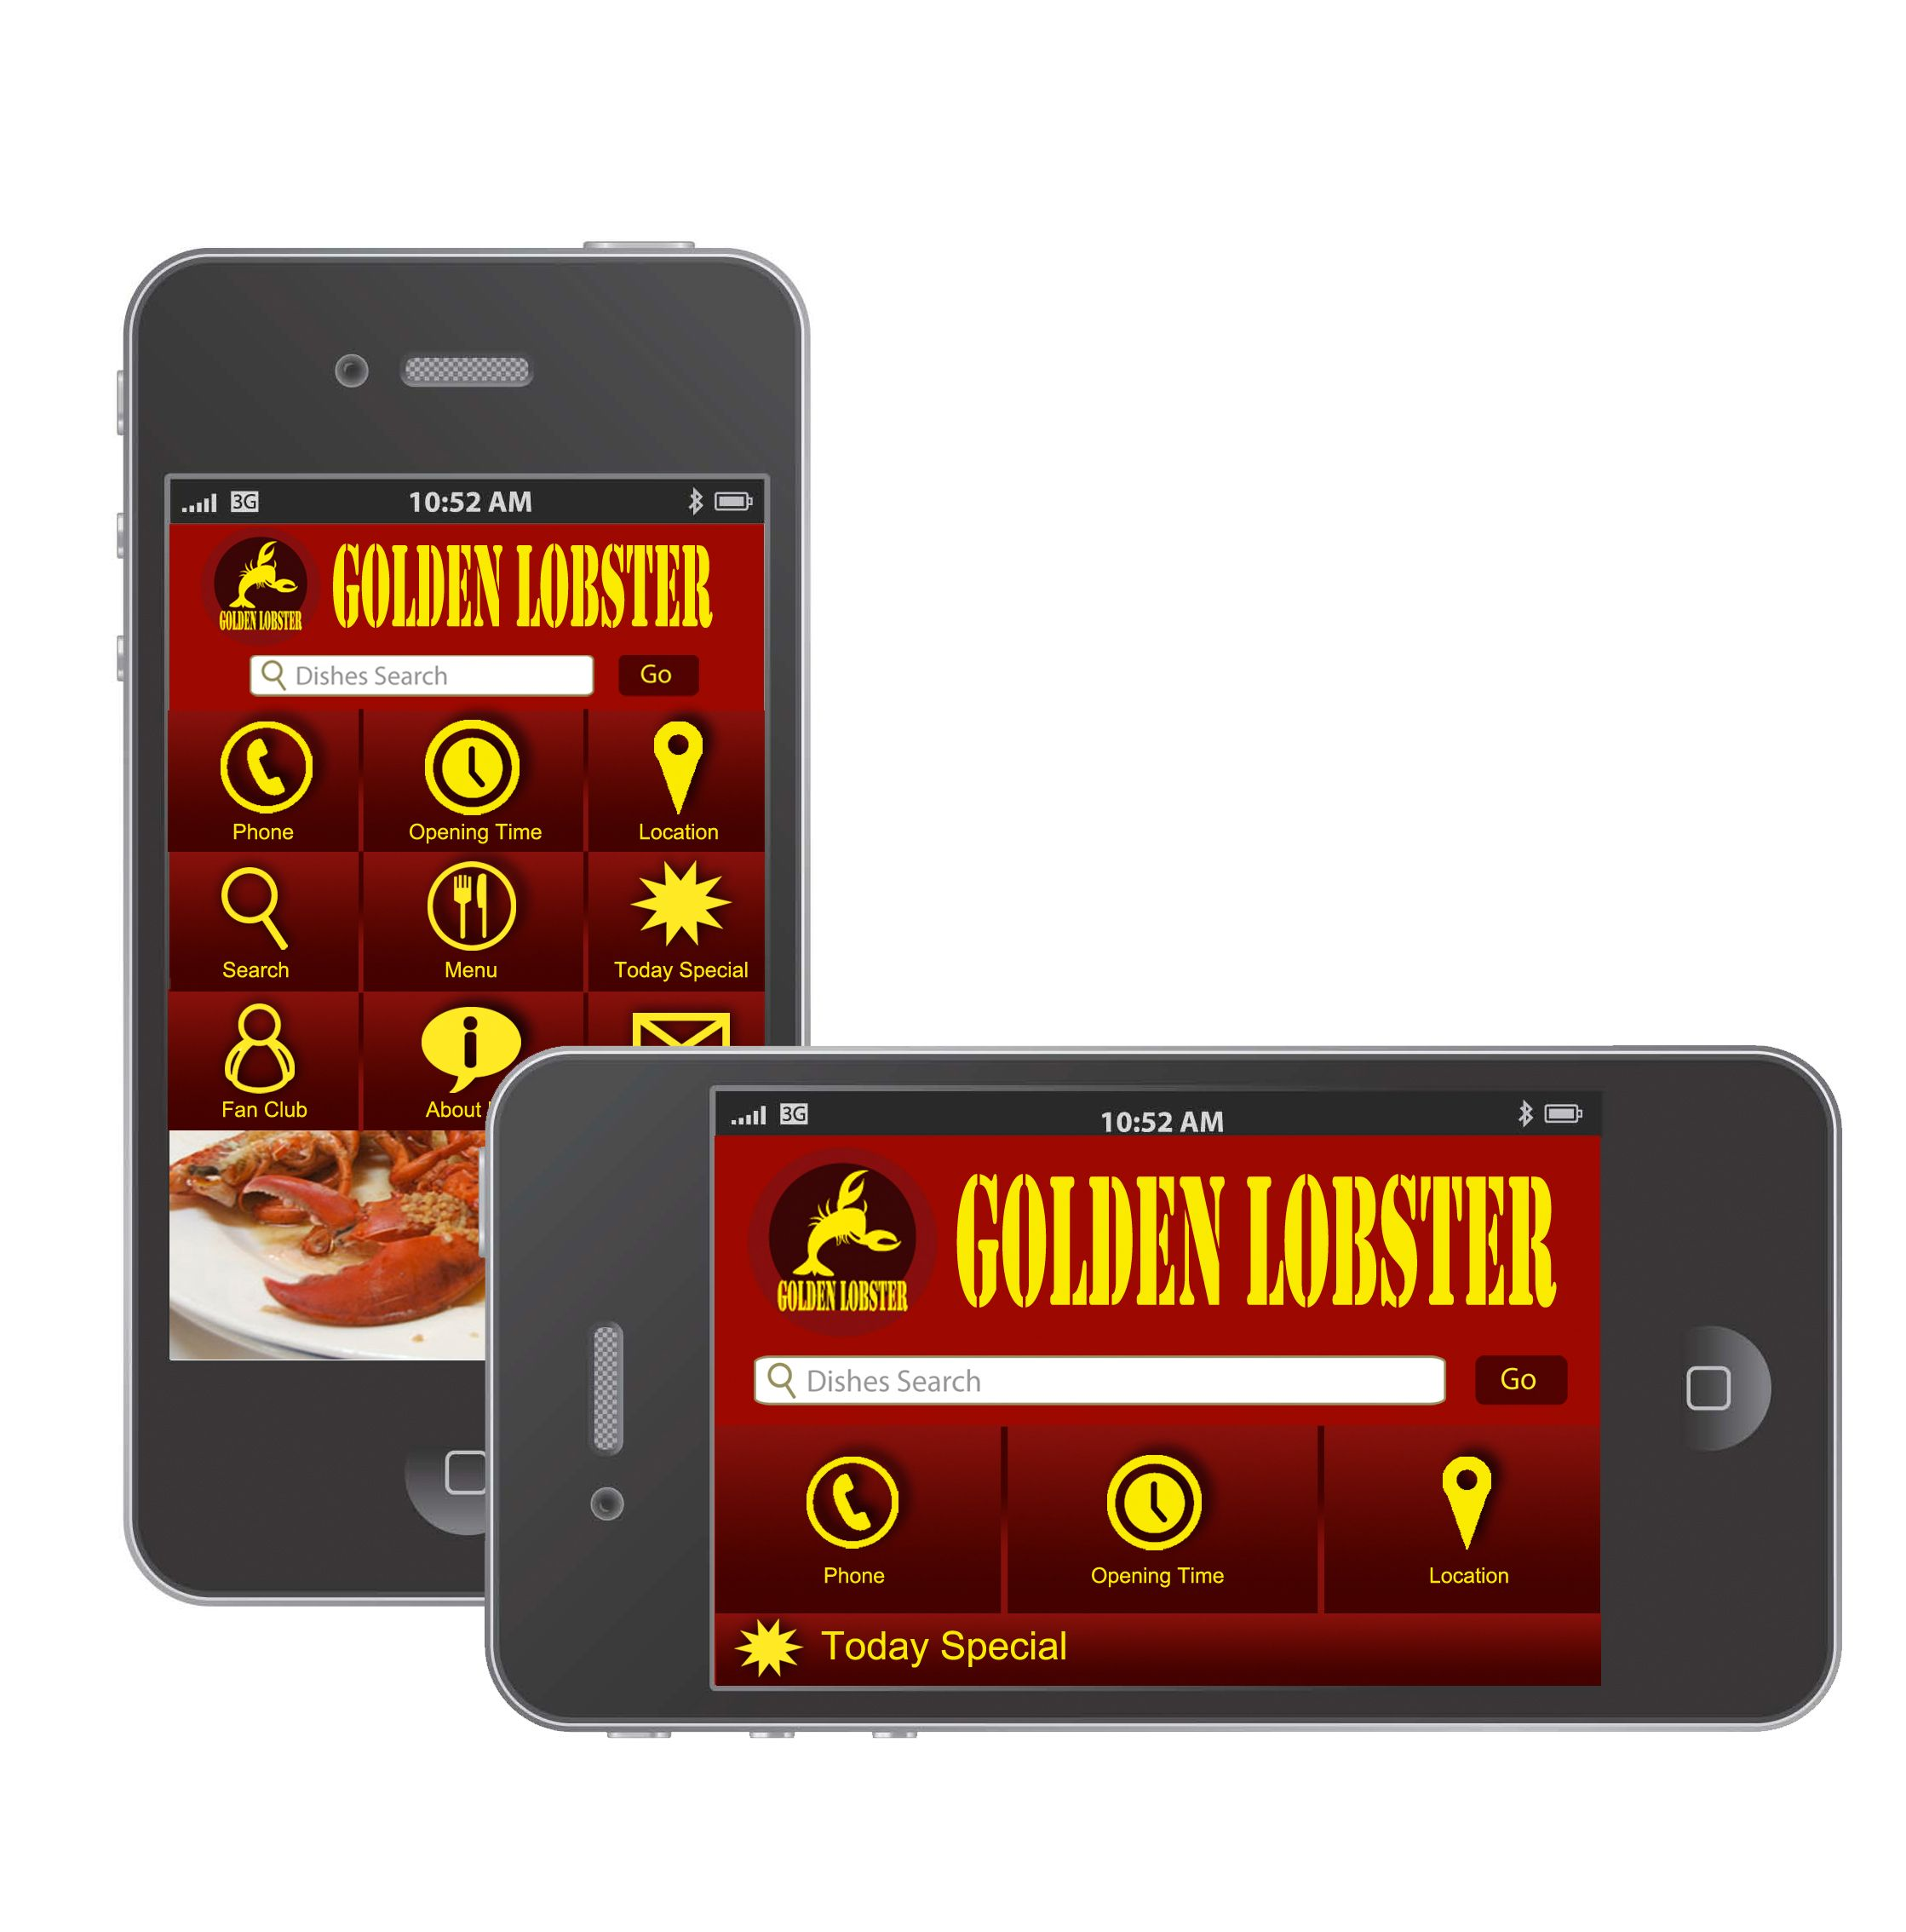 The app that restaurant is going use